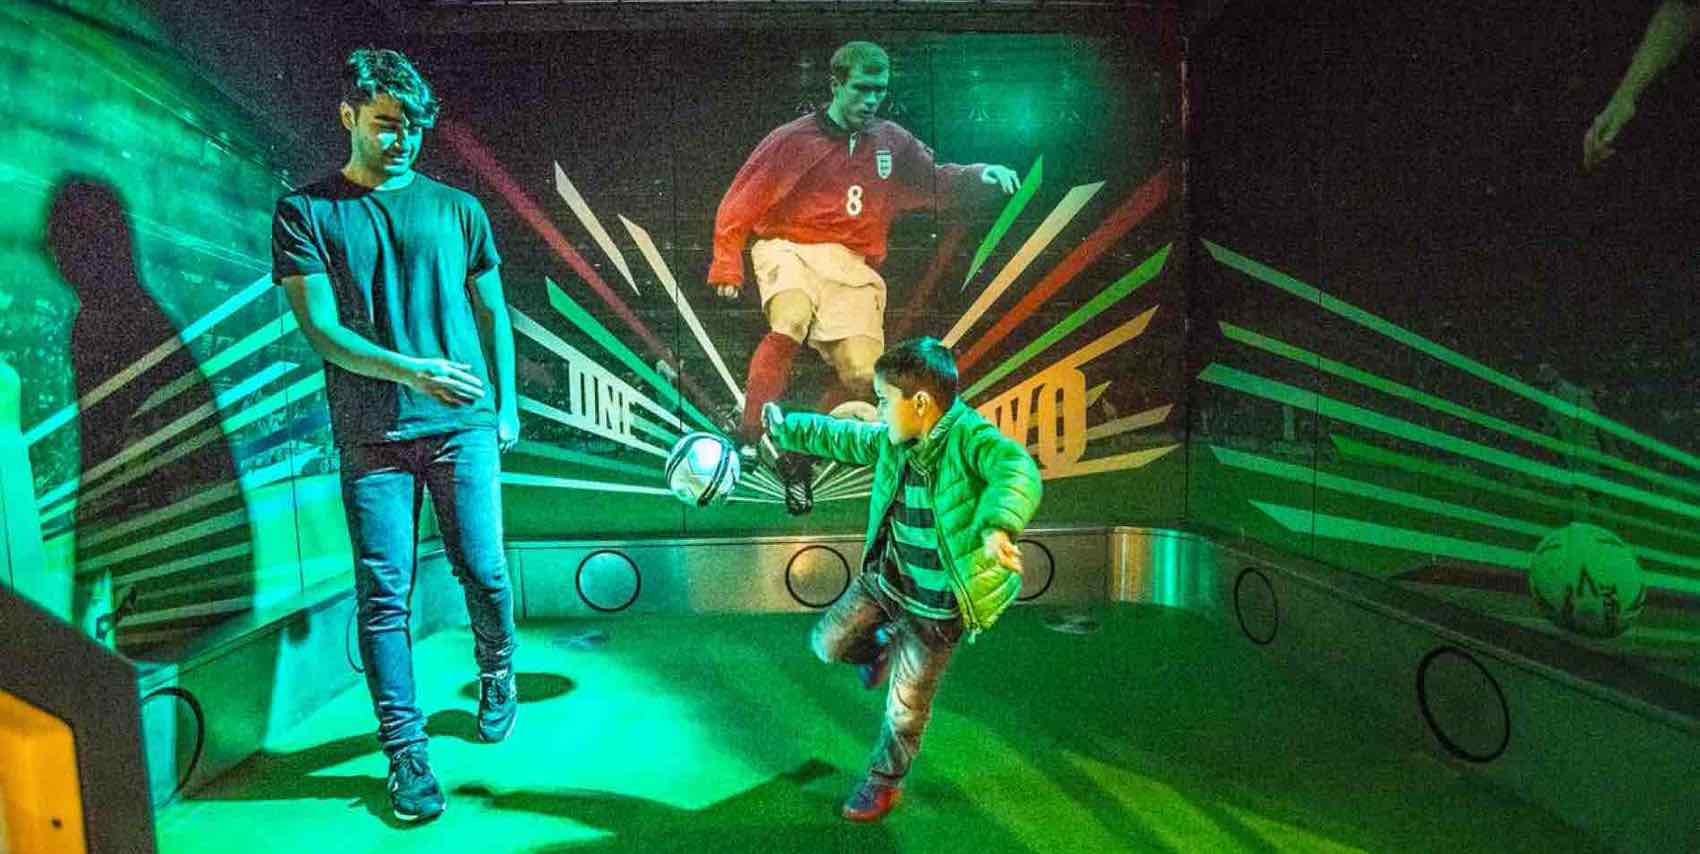 The National Football Museum. Father and son visiting the museum. Kicking a football and aiming at a goal.